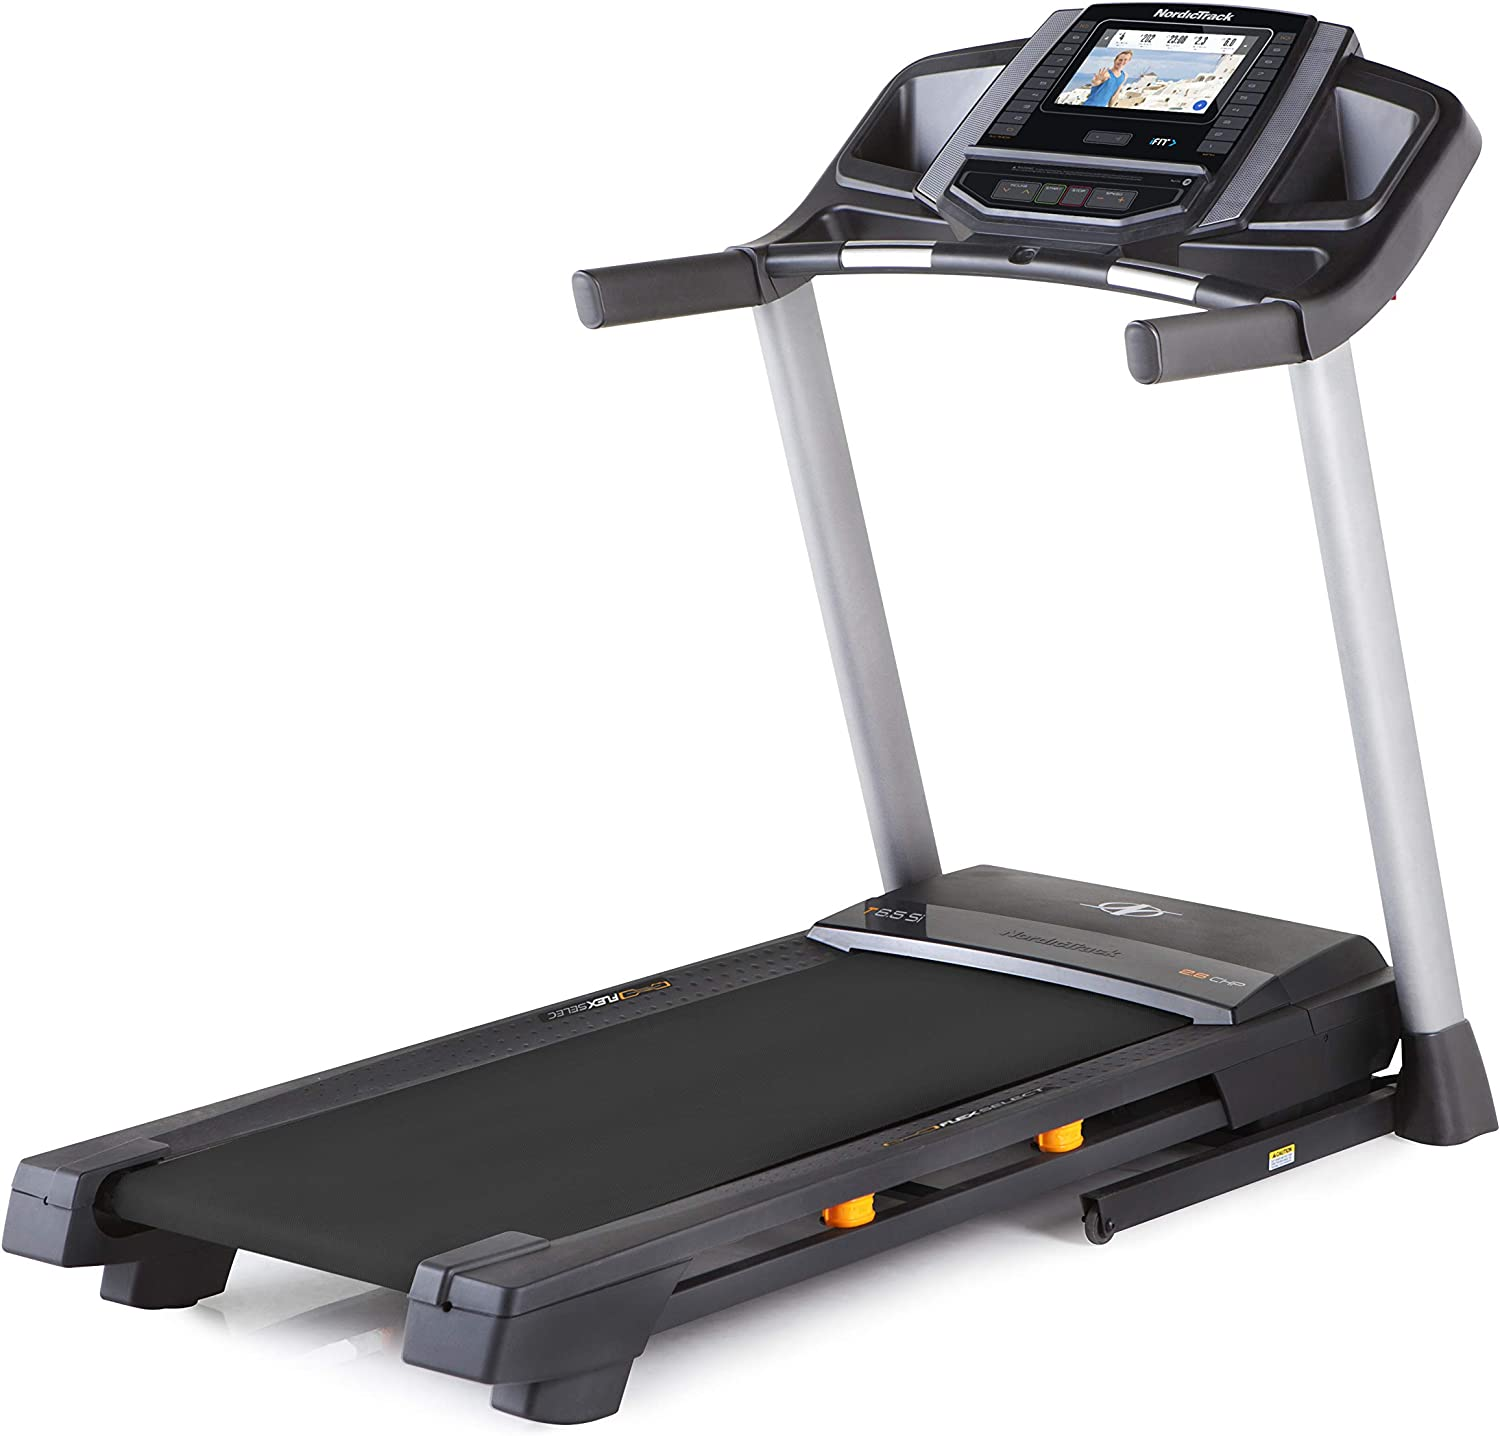 Best incline treadmill: NordicTrack T Series Treadmills